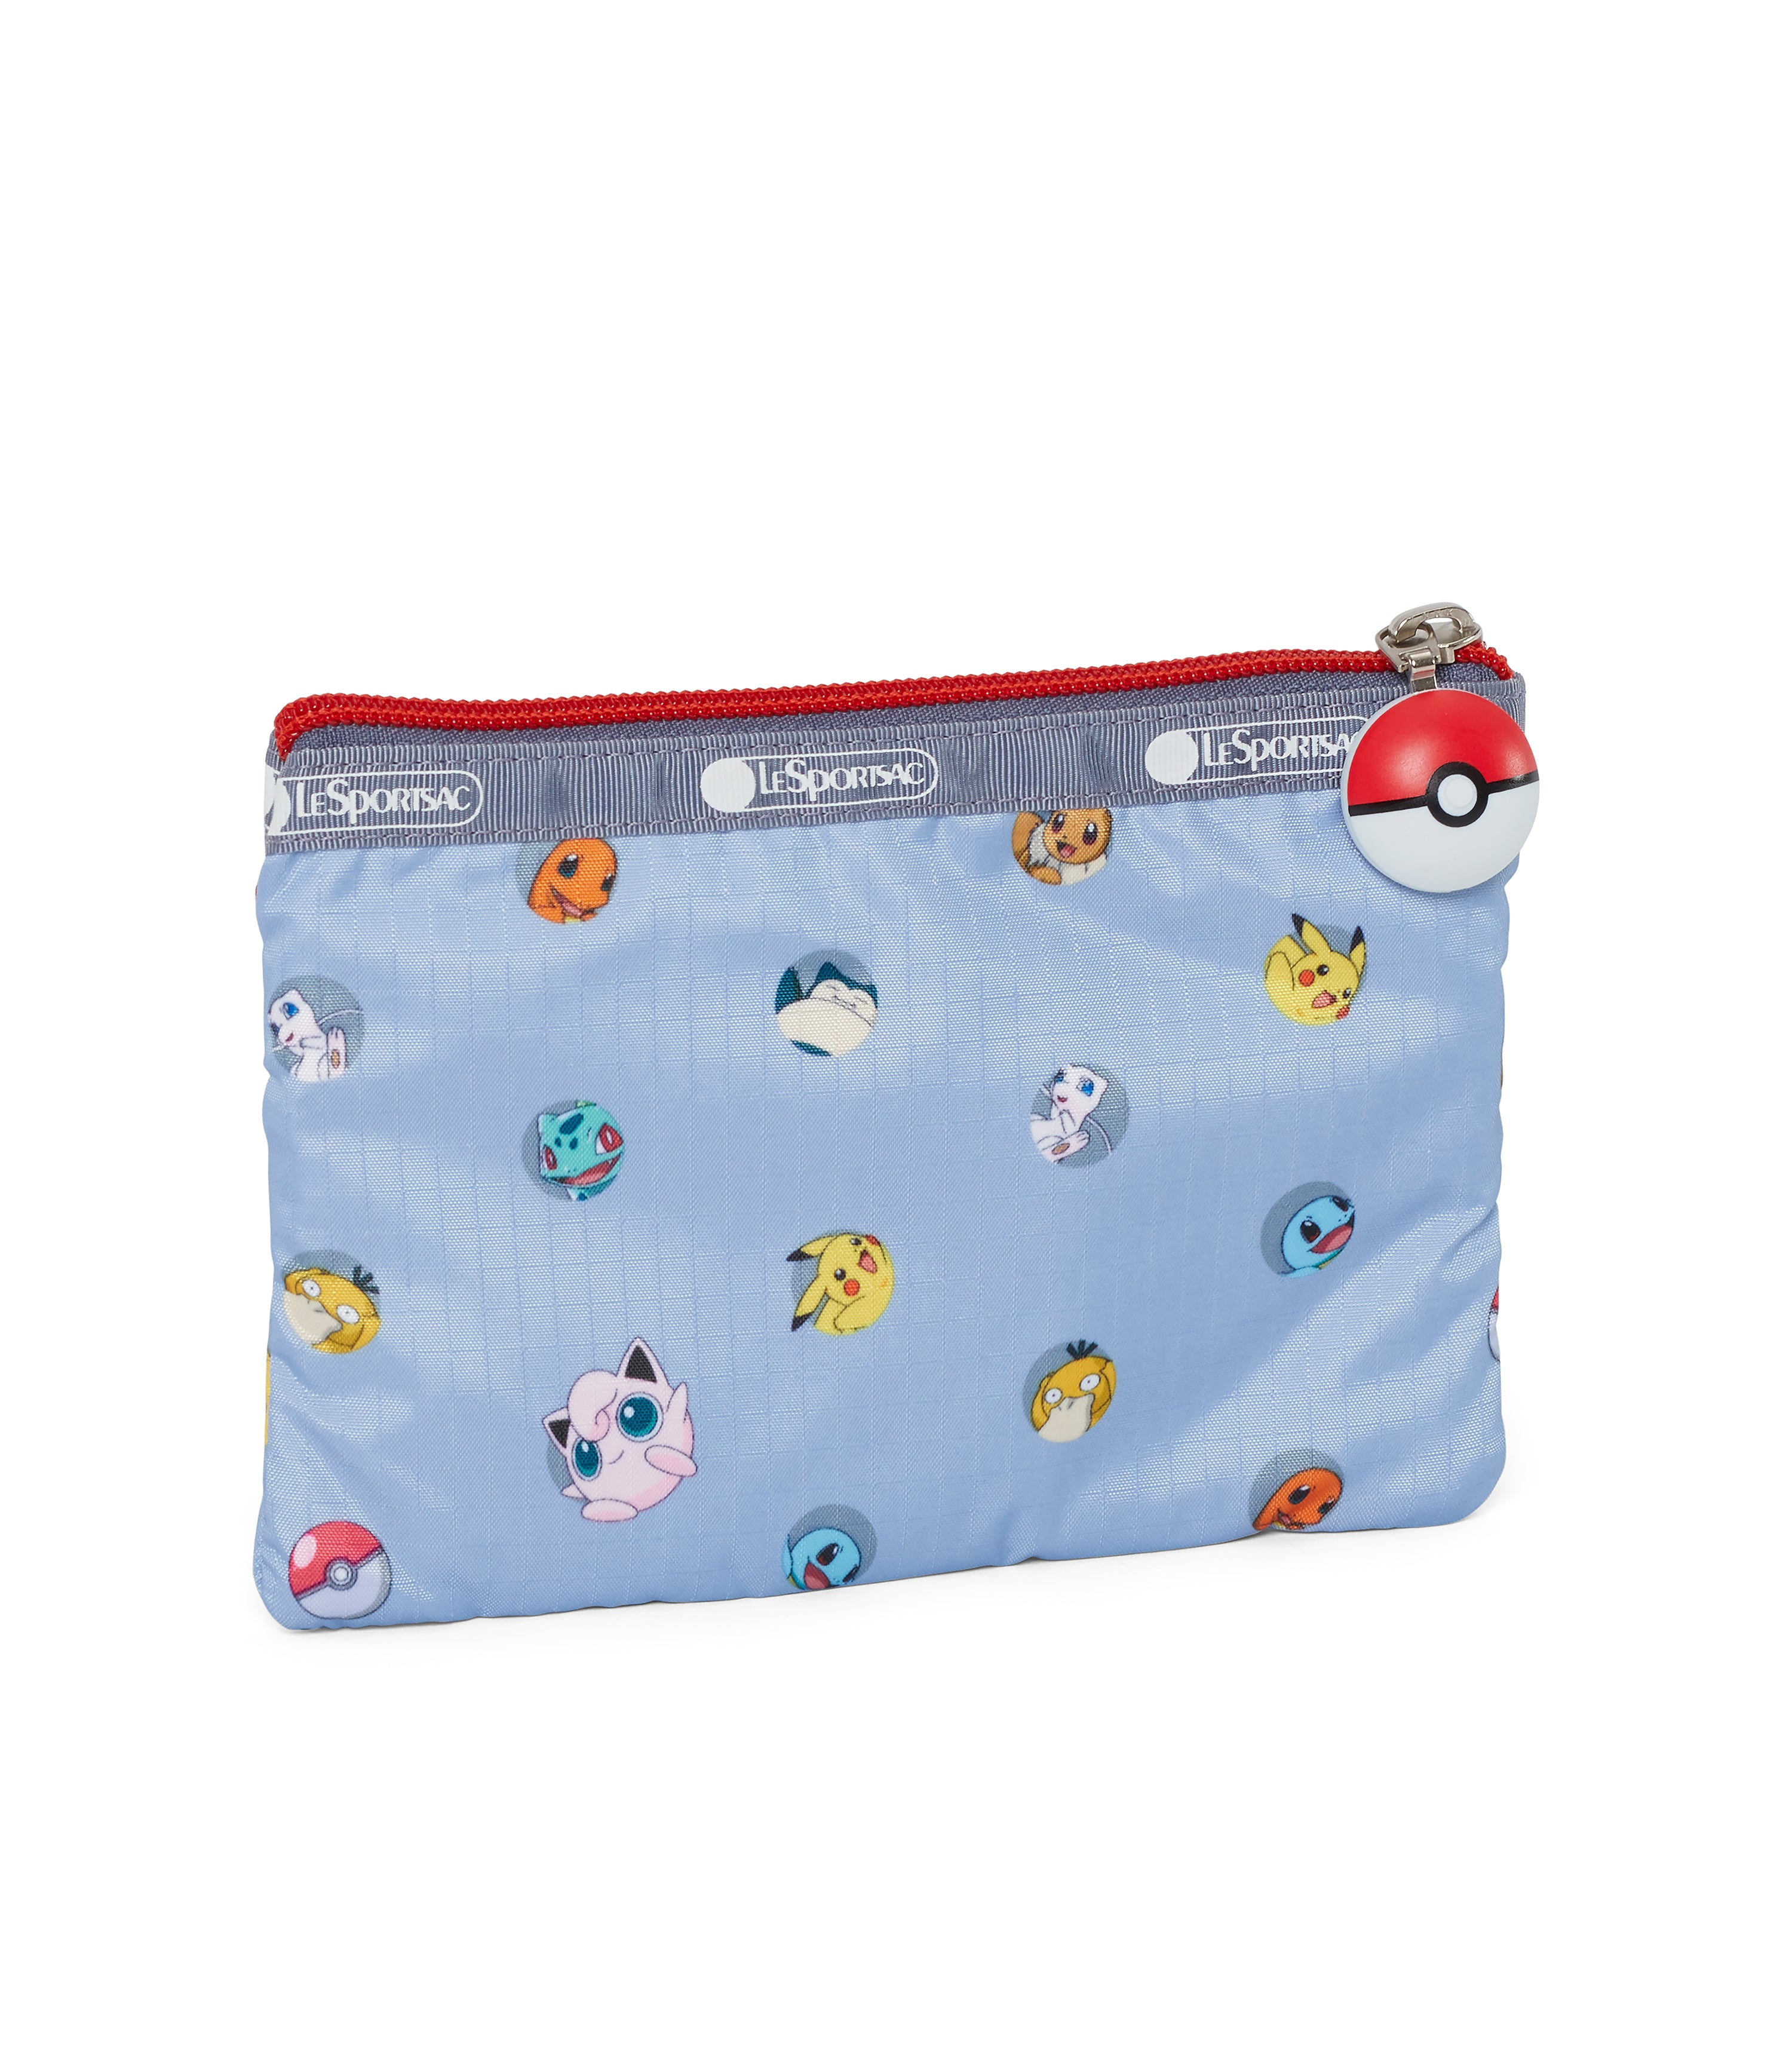 Pokémon - Special 3-Zip Cosmetic - Accessories - Pokémon Dot Lite - Back View